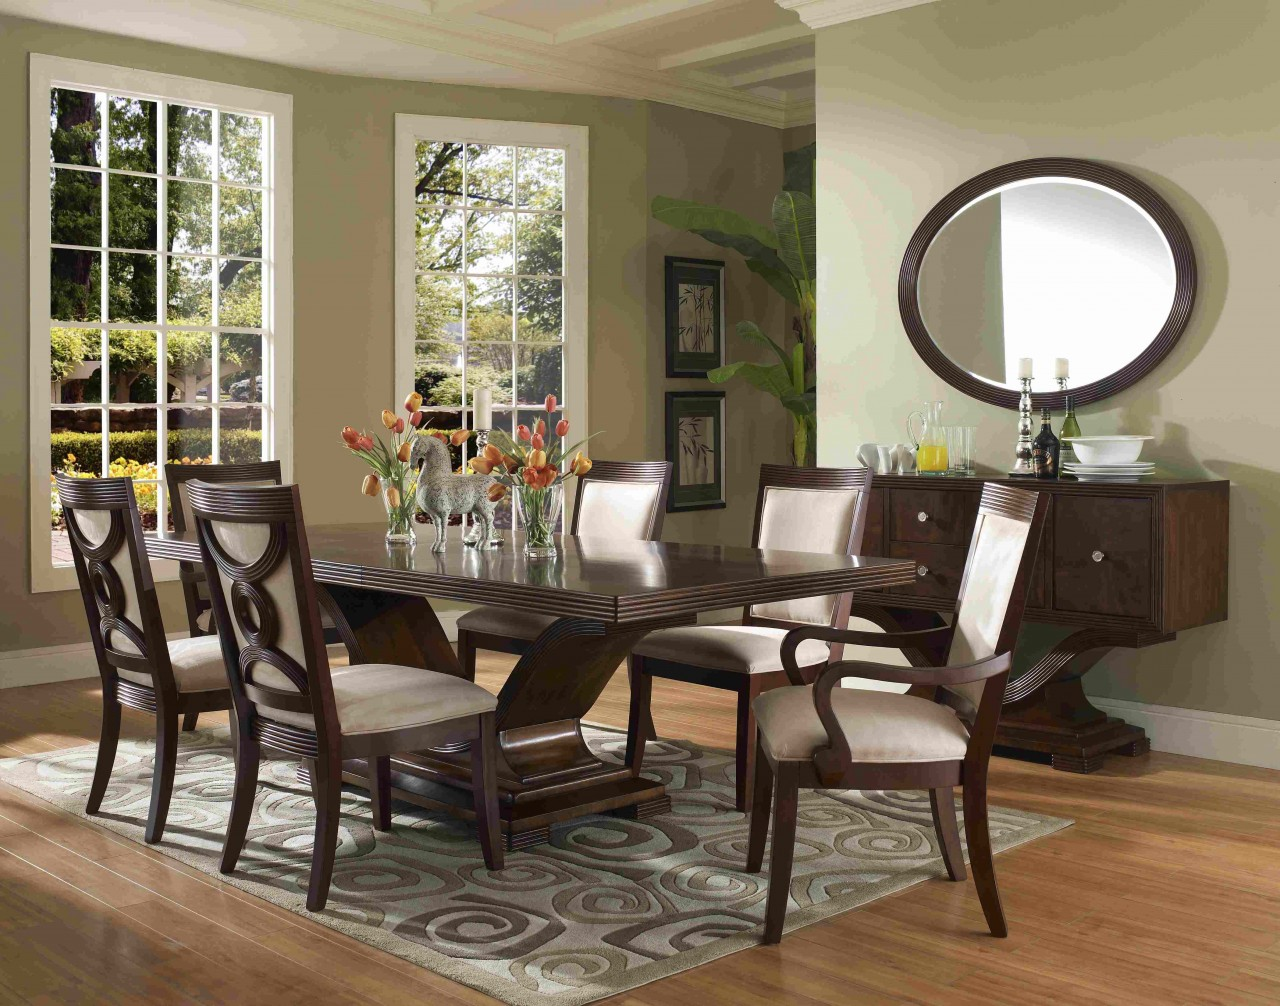 White round dining table for 6 for Formal dining room collections